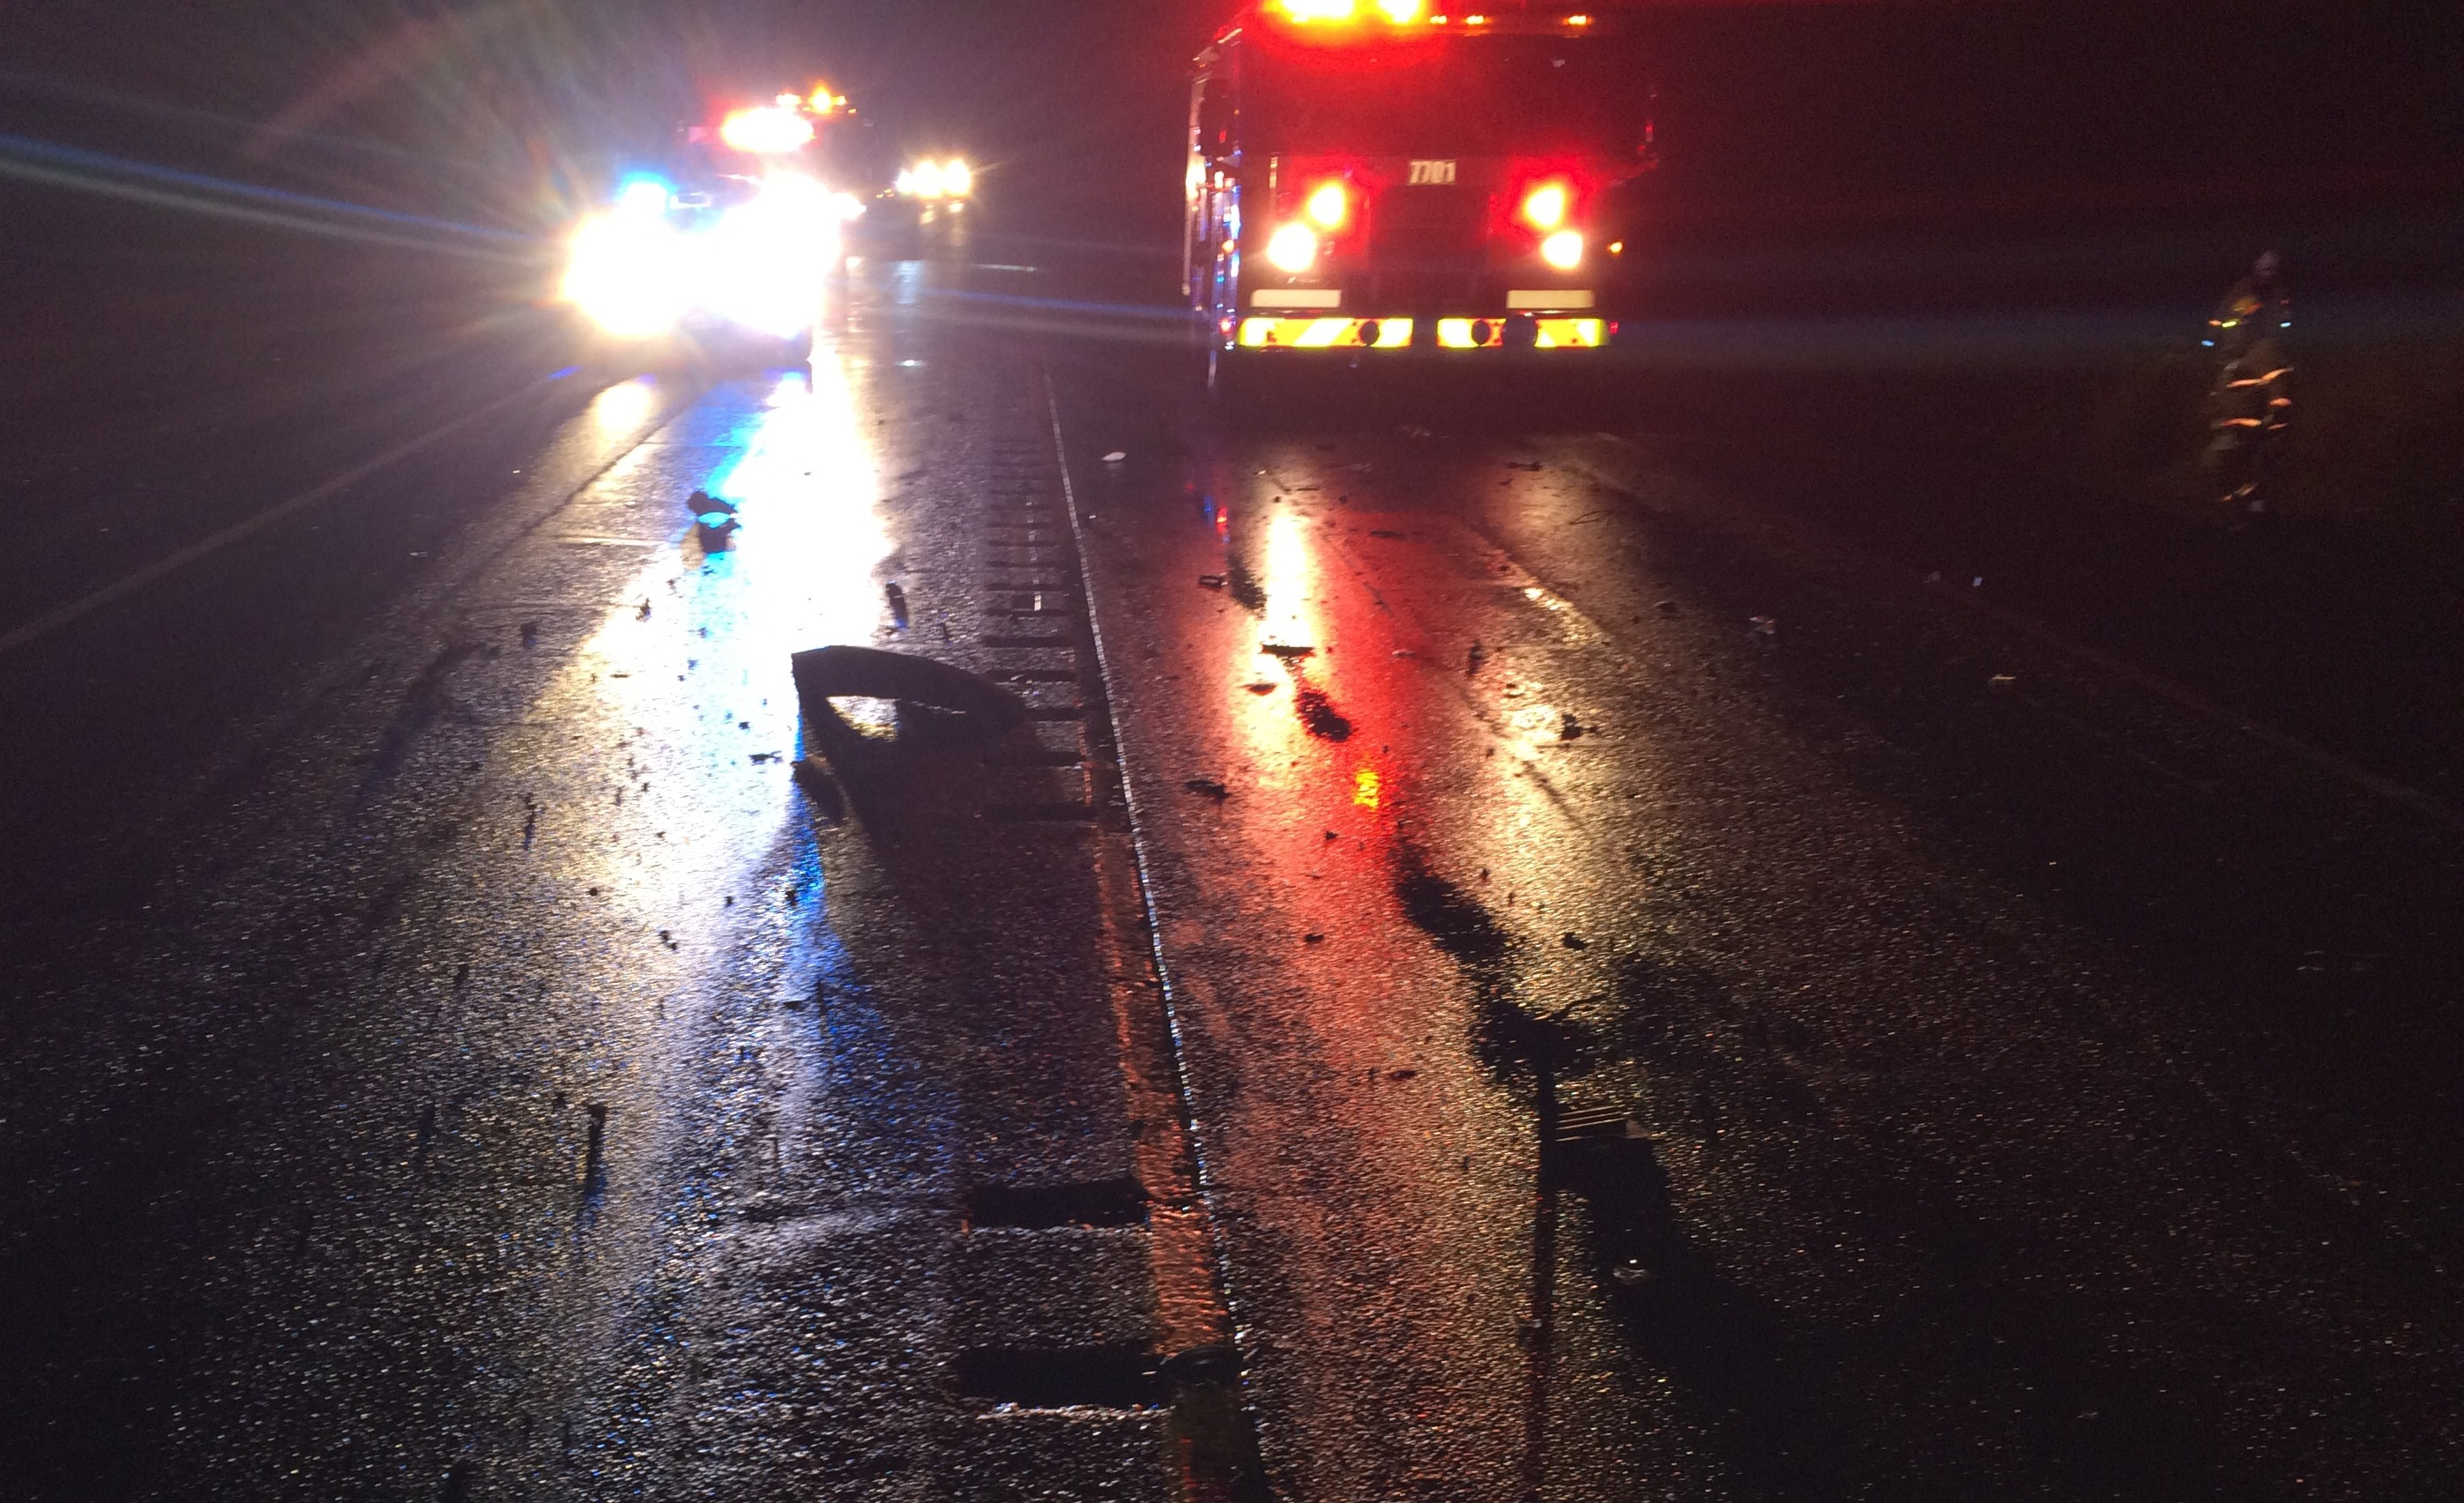 Alcohol Use Suspected in Fatal Crash (Photo)